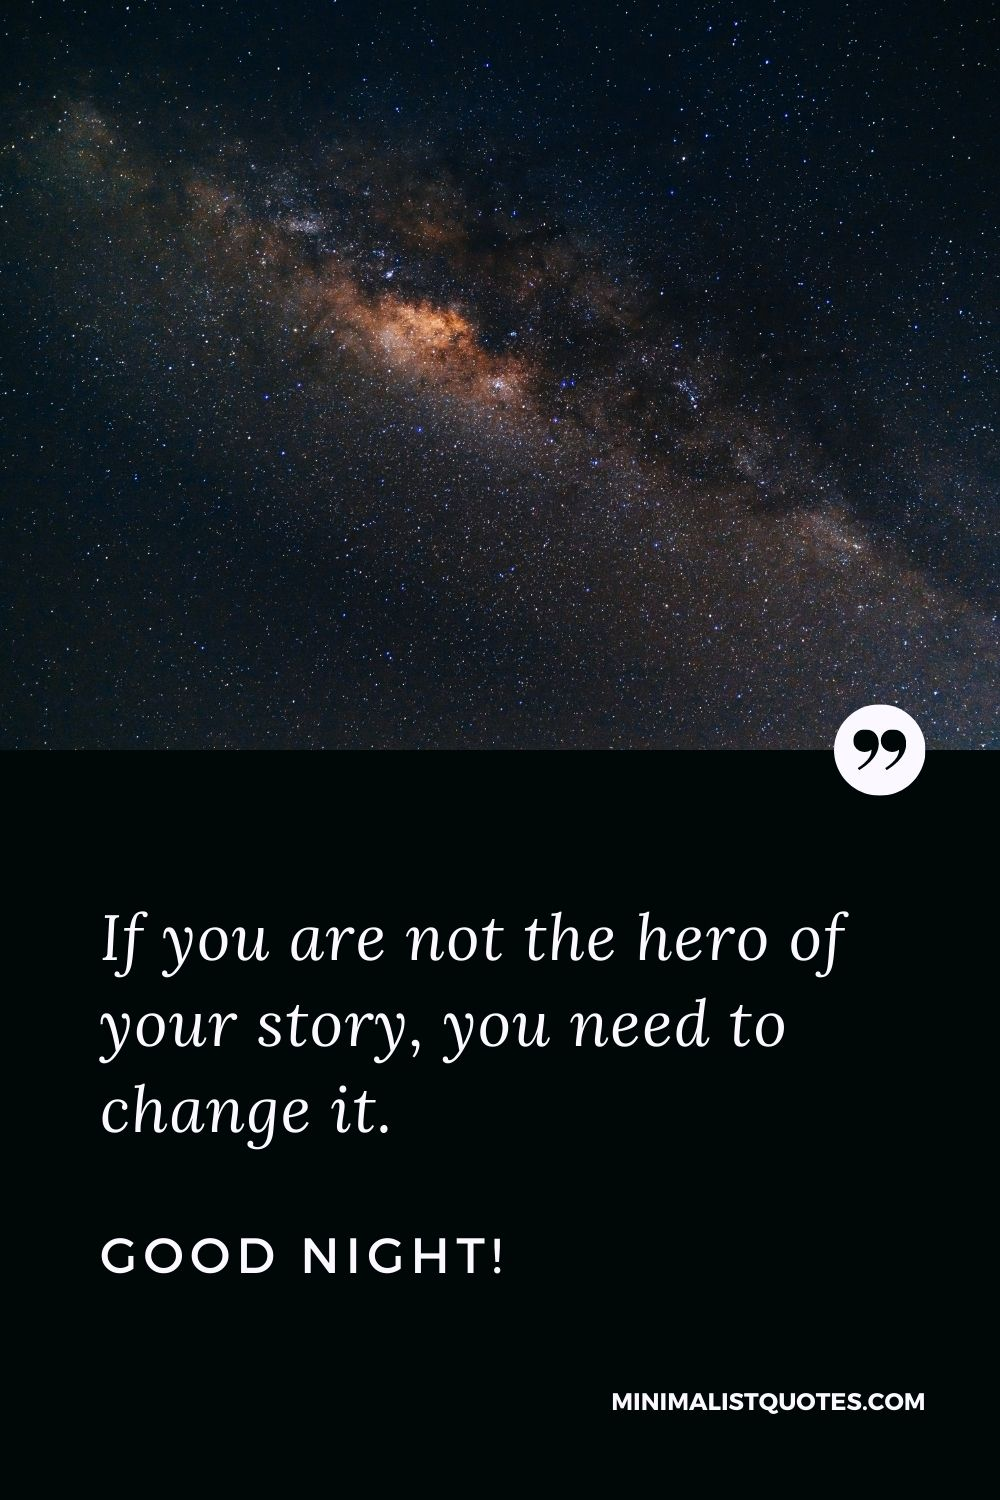 Good Night Quote, Wish & Message With Image: If you are not the hero of your story, you need to change it. Good Night!